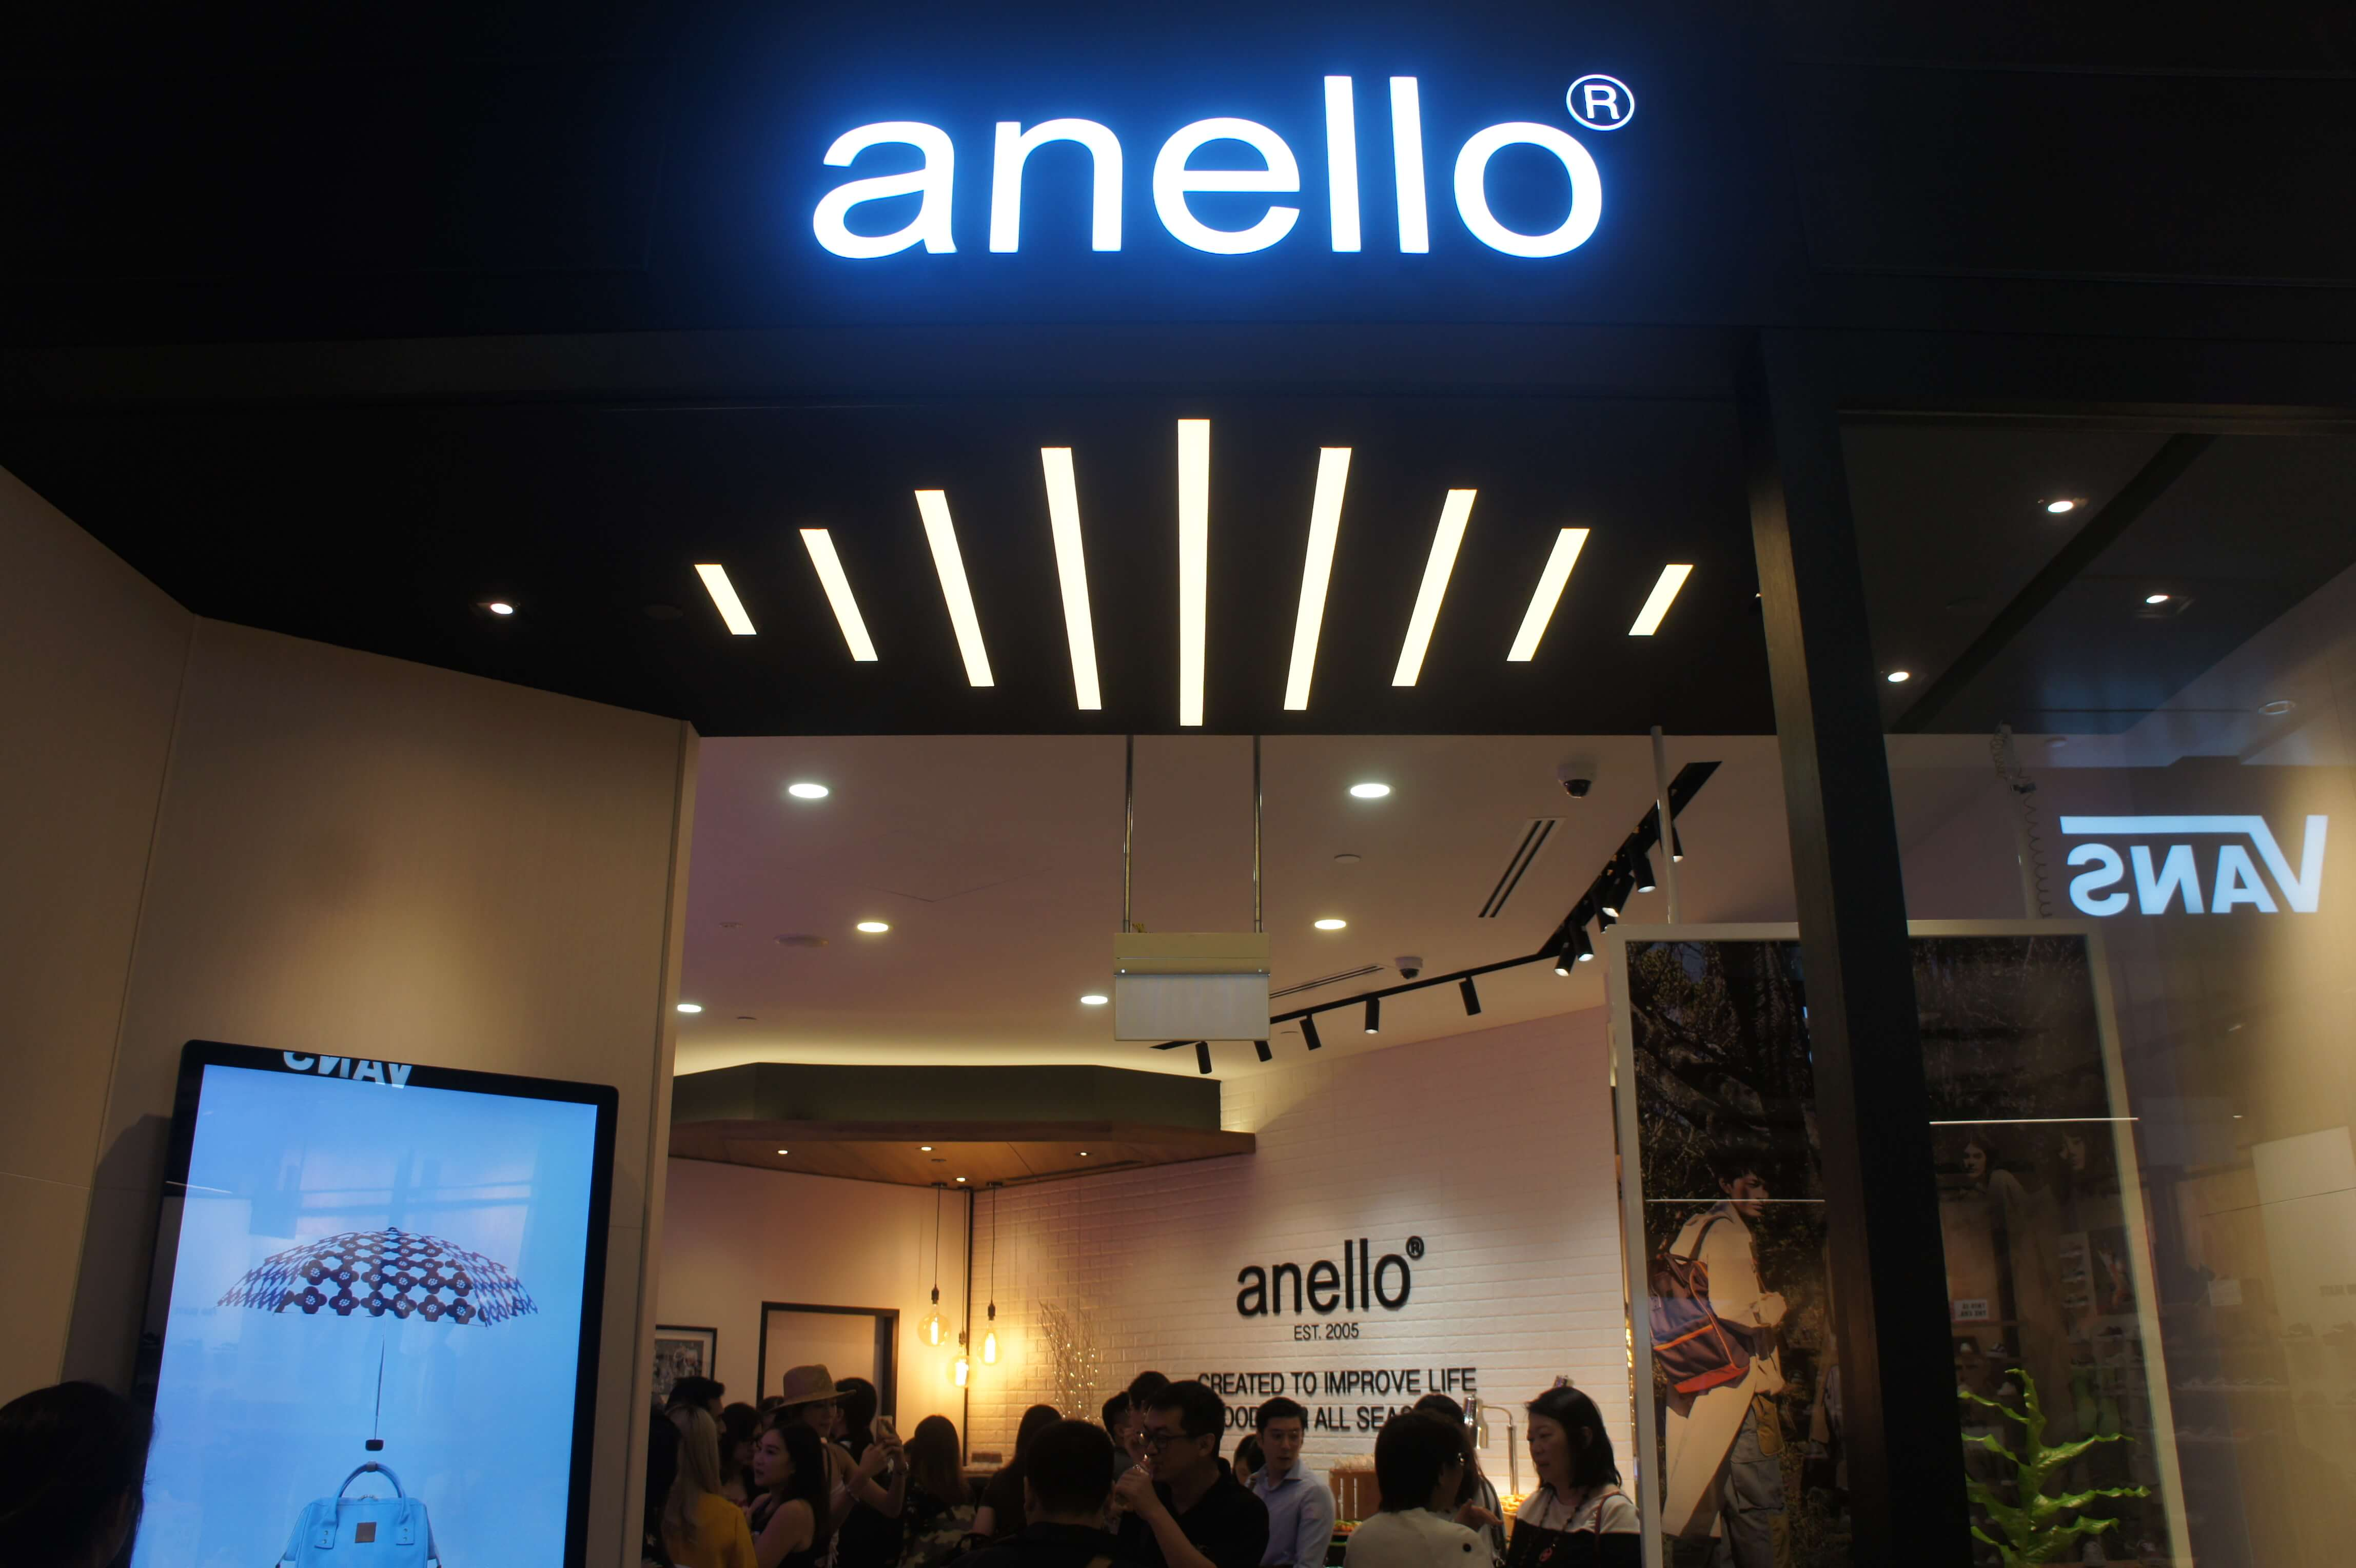 Everything that's new at anello's flagship Jewel Changi Airport boutique - Alvinology